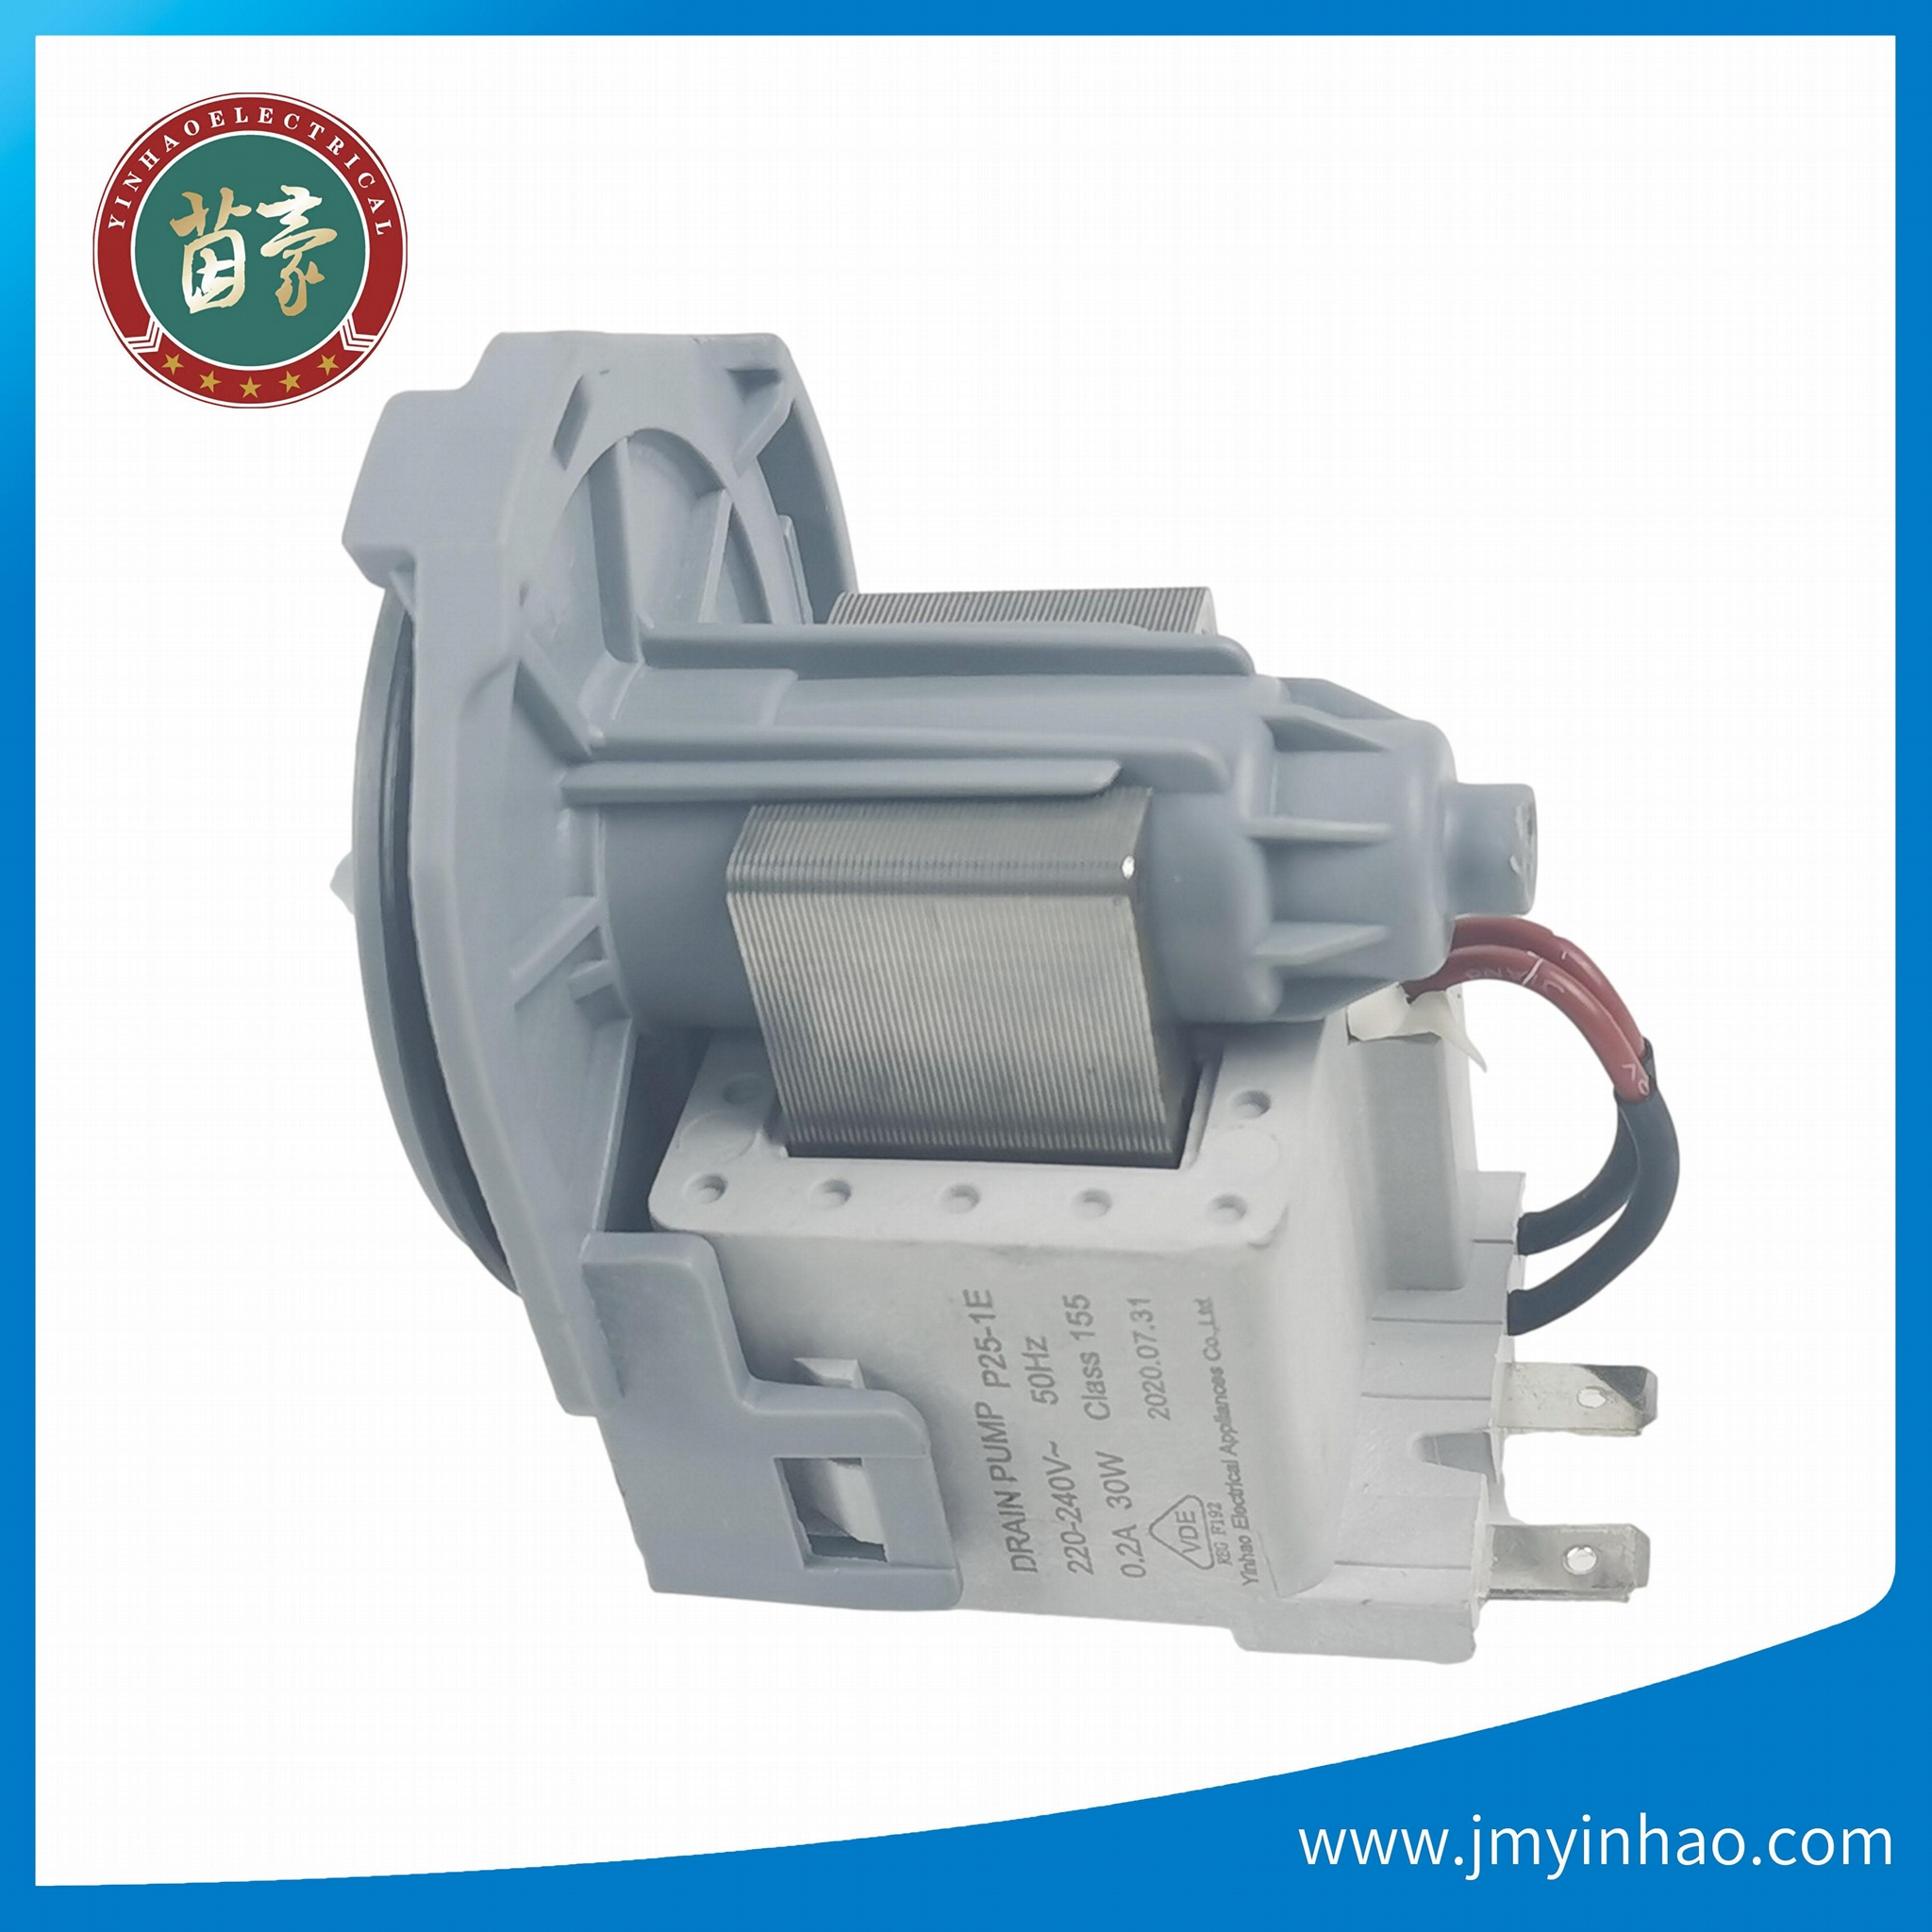 AC water drain pump for dishwasher/home appliance spare part